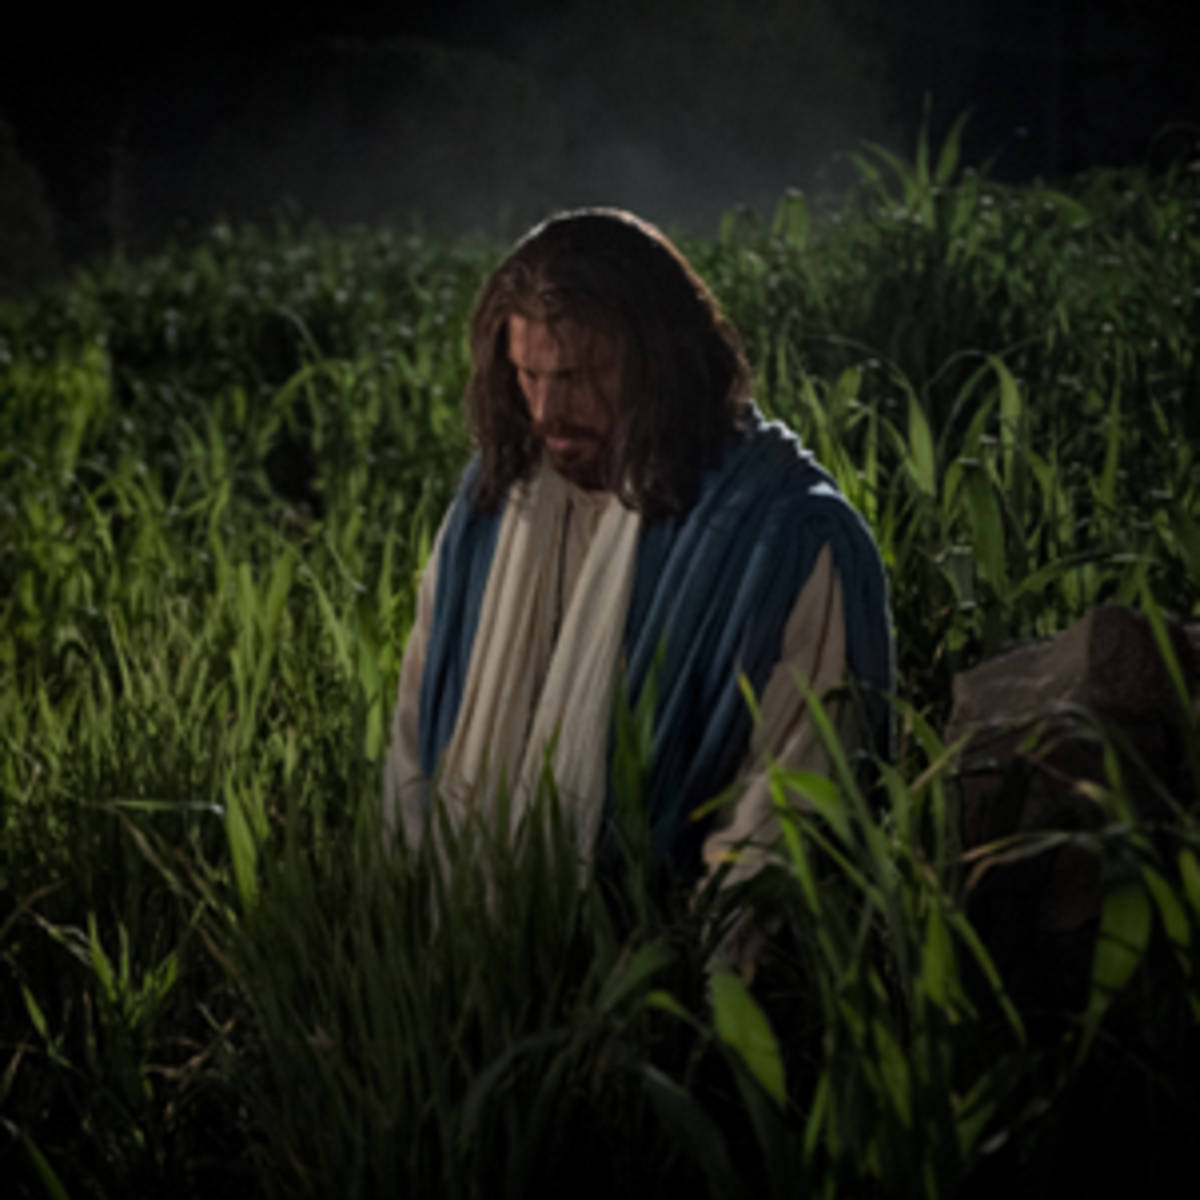 Jesus went to the Garden of Gethsemane to suffer for our sins and to pray to God.